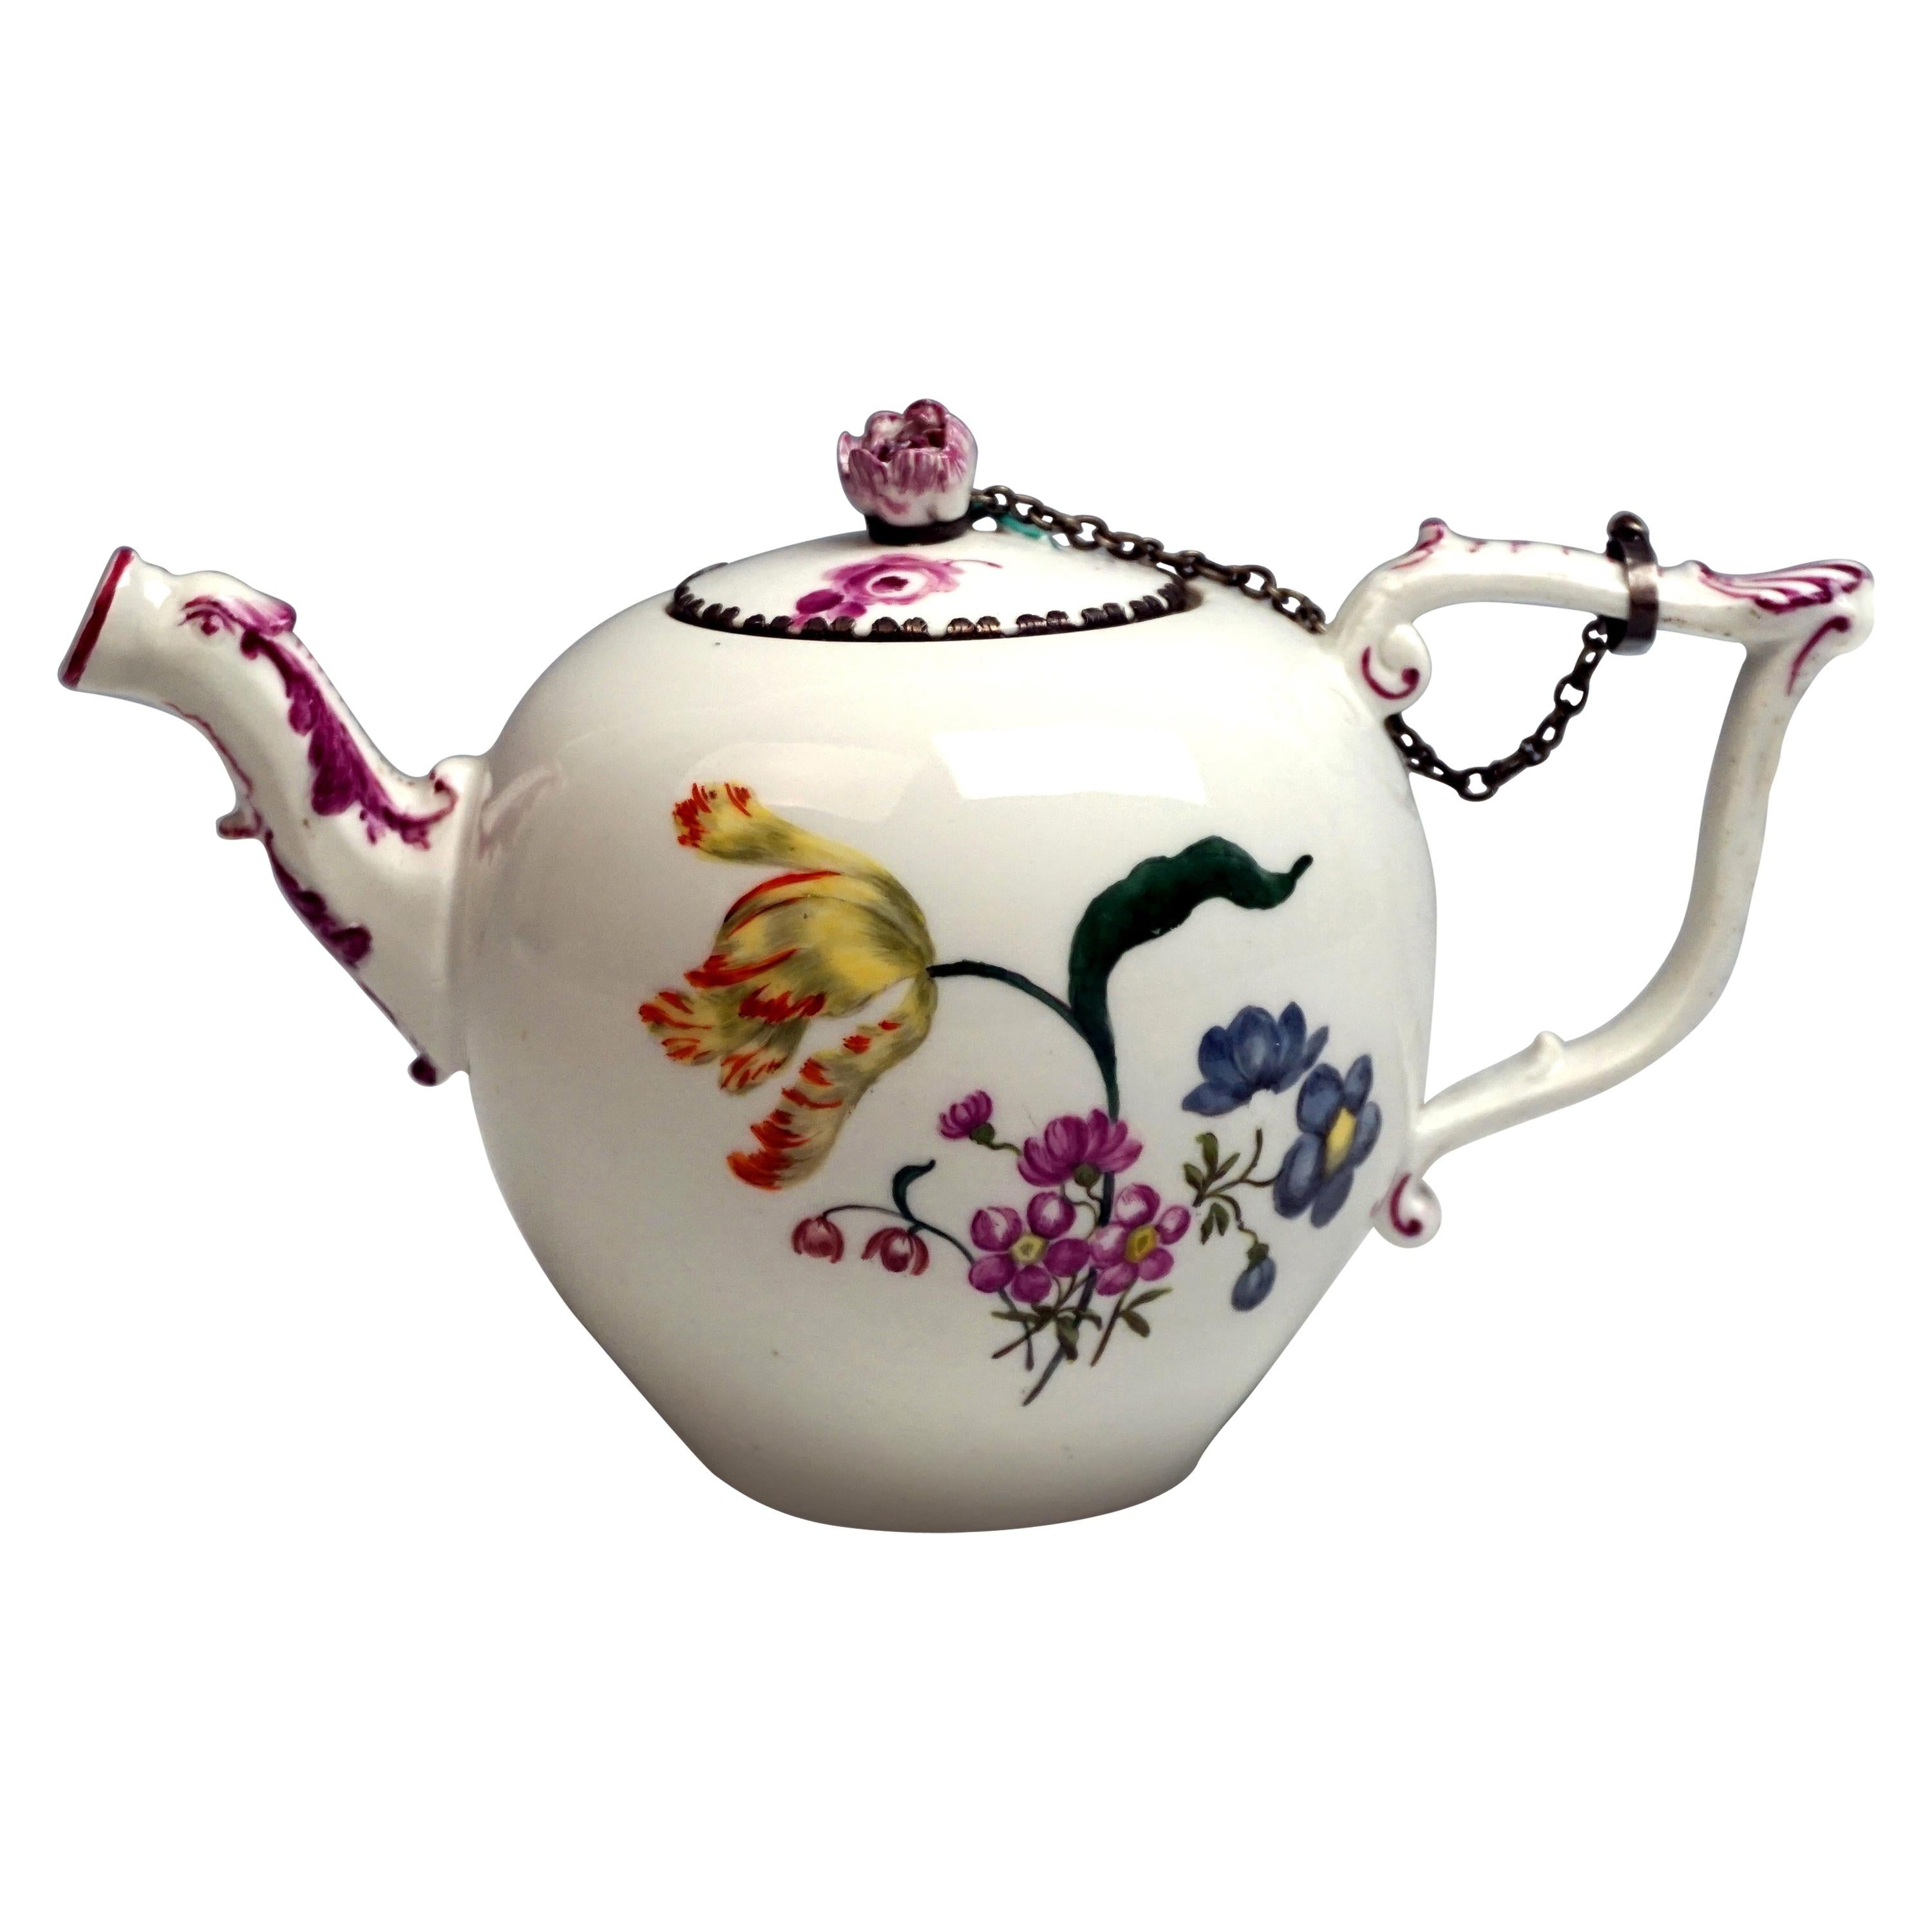 Meissen Tea Pot with Animal Spout and Flower Decoration Rococo Period circa 1740